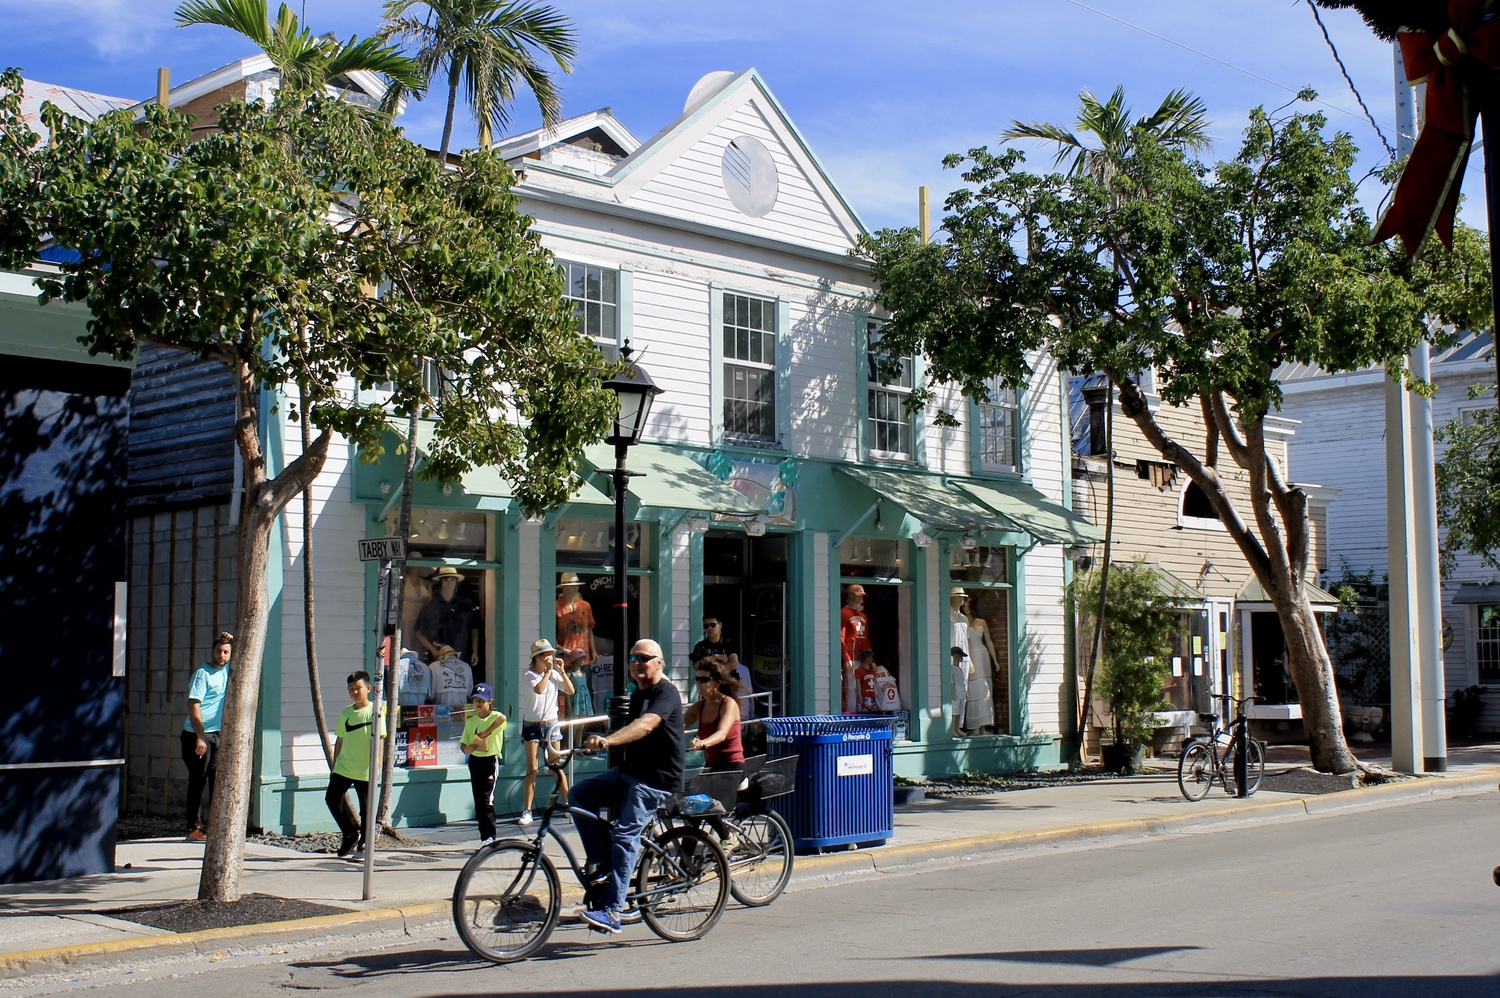 Our first port was Key West, Florida. A small island in the Florida Keys, Key West has a laid back atmosphere with plenty of shops and restaurants which cater to tourists.